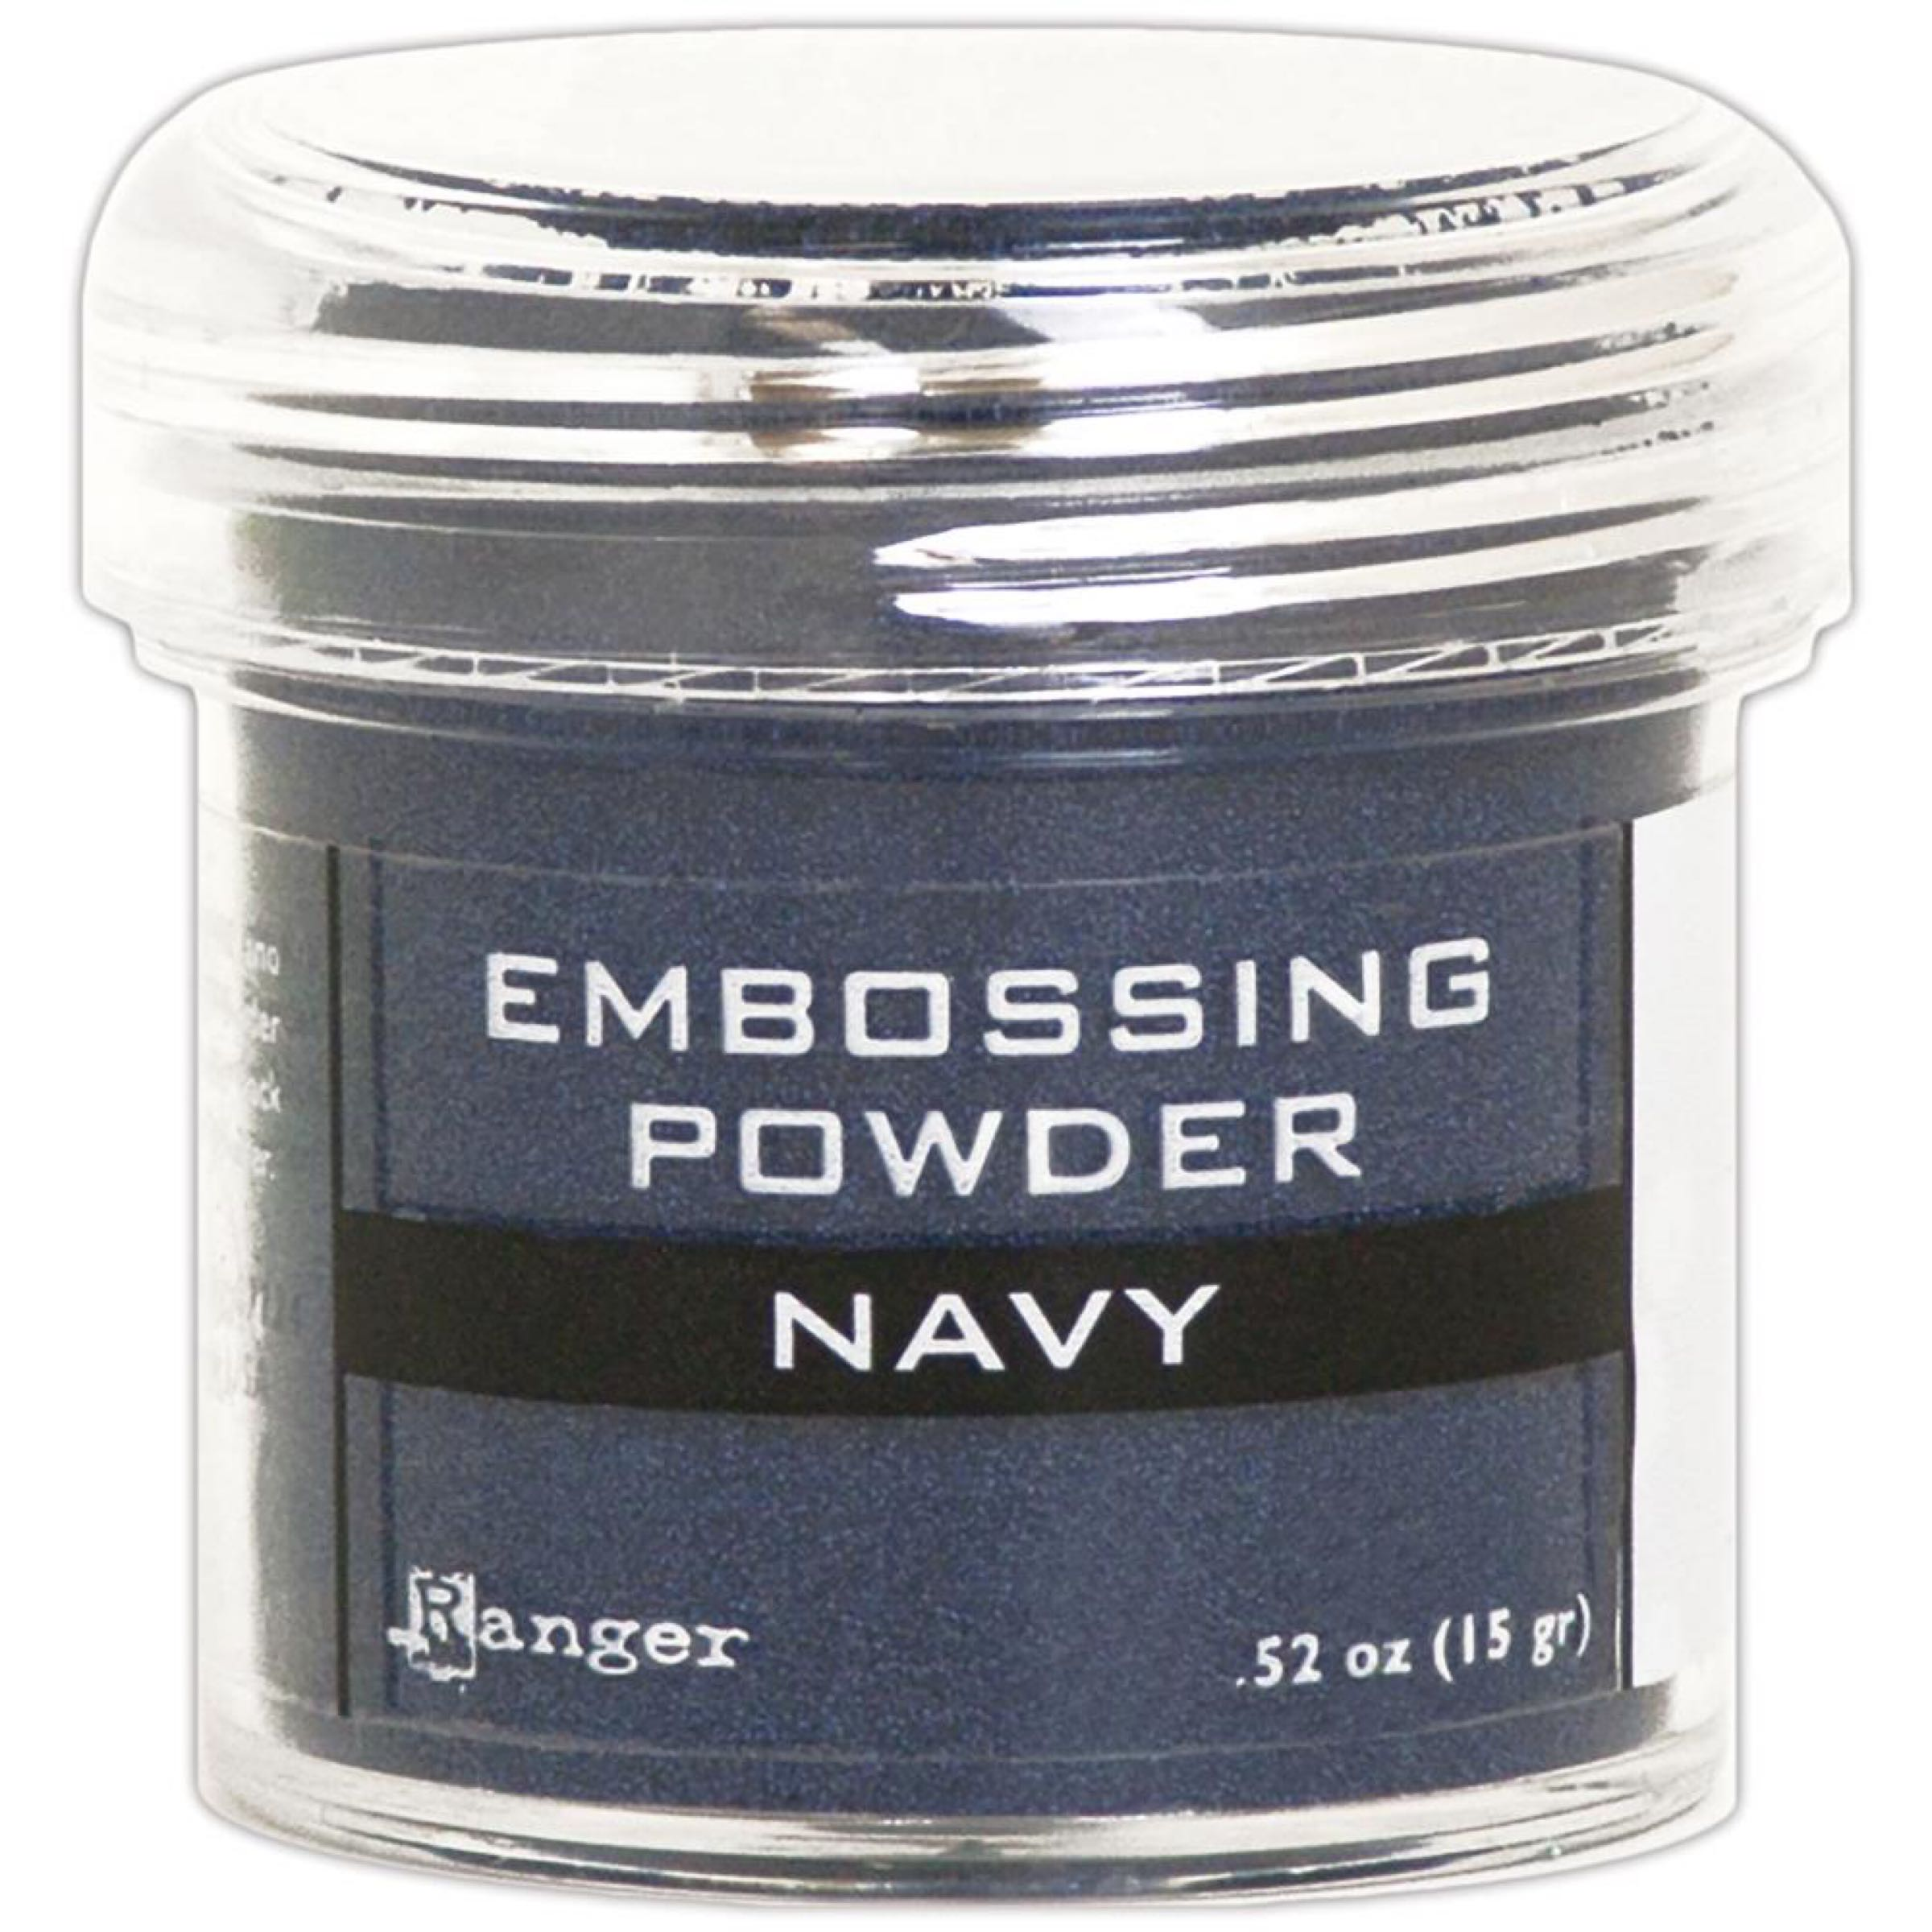 Ranger Embossing Powder - Navy